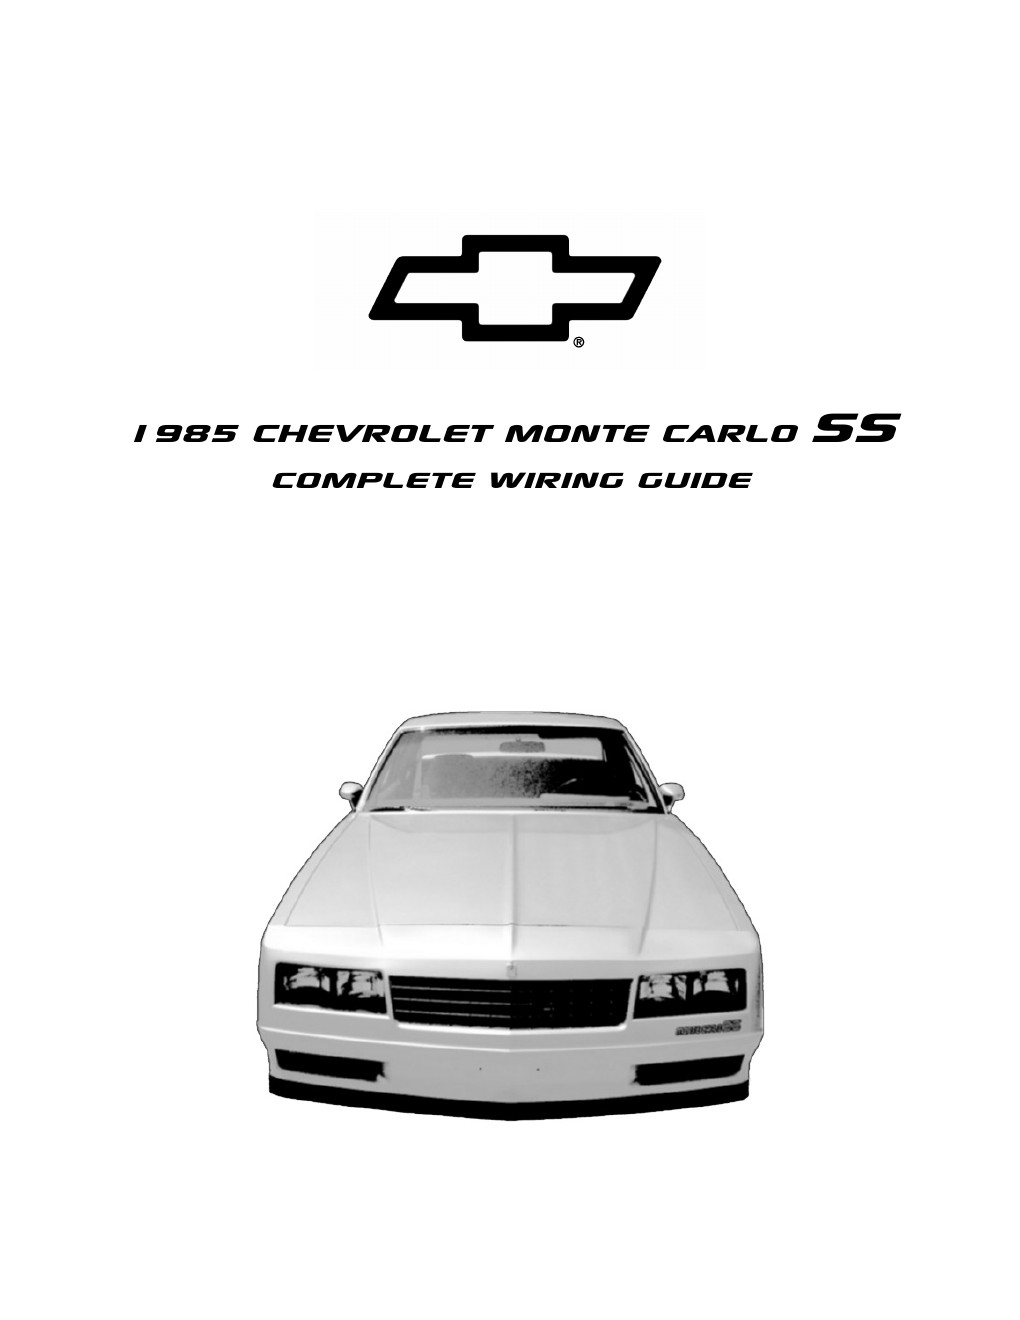 1995 chevrolet monte carlo ss complete wiring diagram part 1 sunday 15